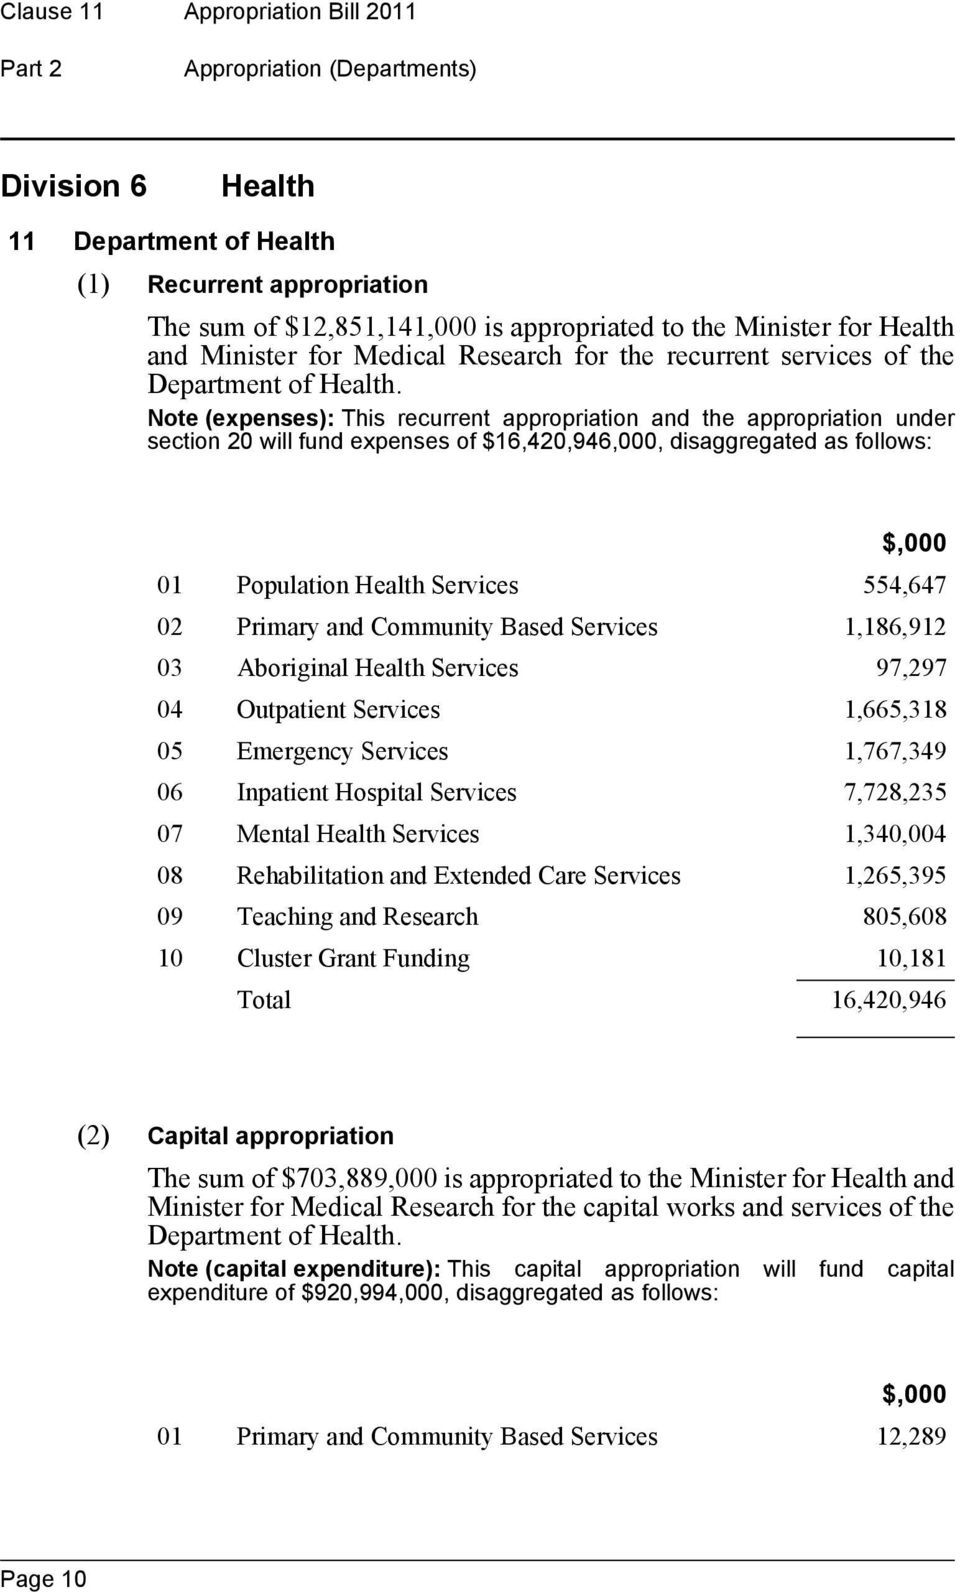 Note (expenses): This recurrent appropriation and the appropriation under section 20 will fund expenses of $16,420,946,000, disaggregated as follows: 01 Population Health Services 554,647 02 Primary